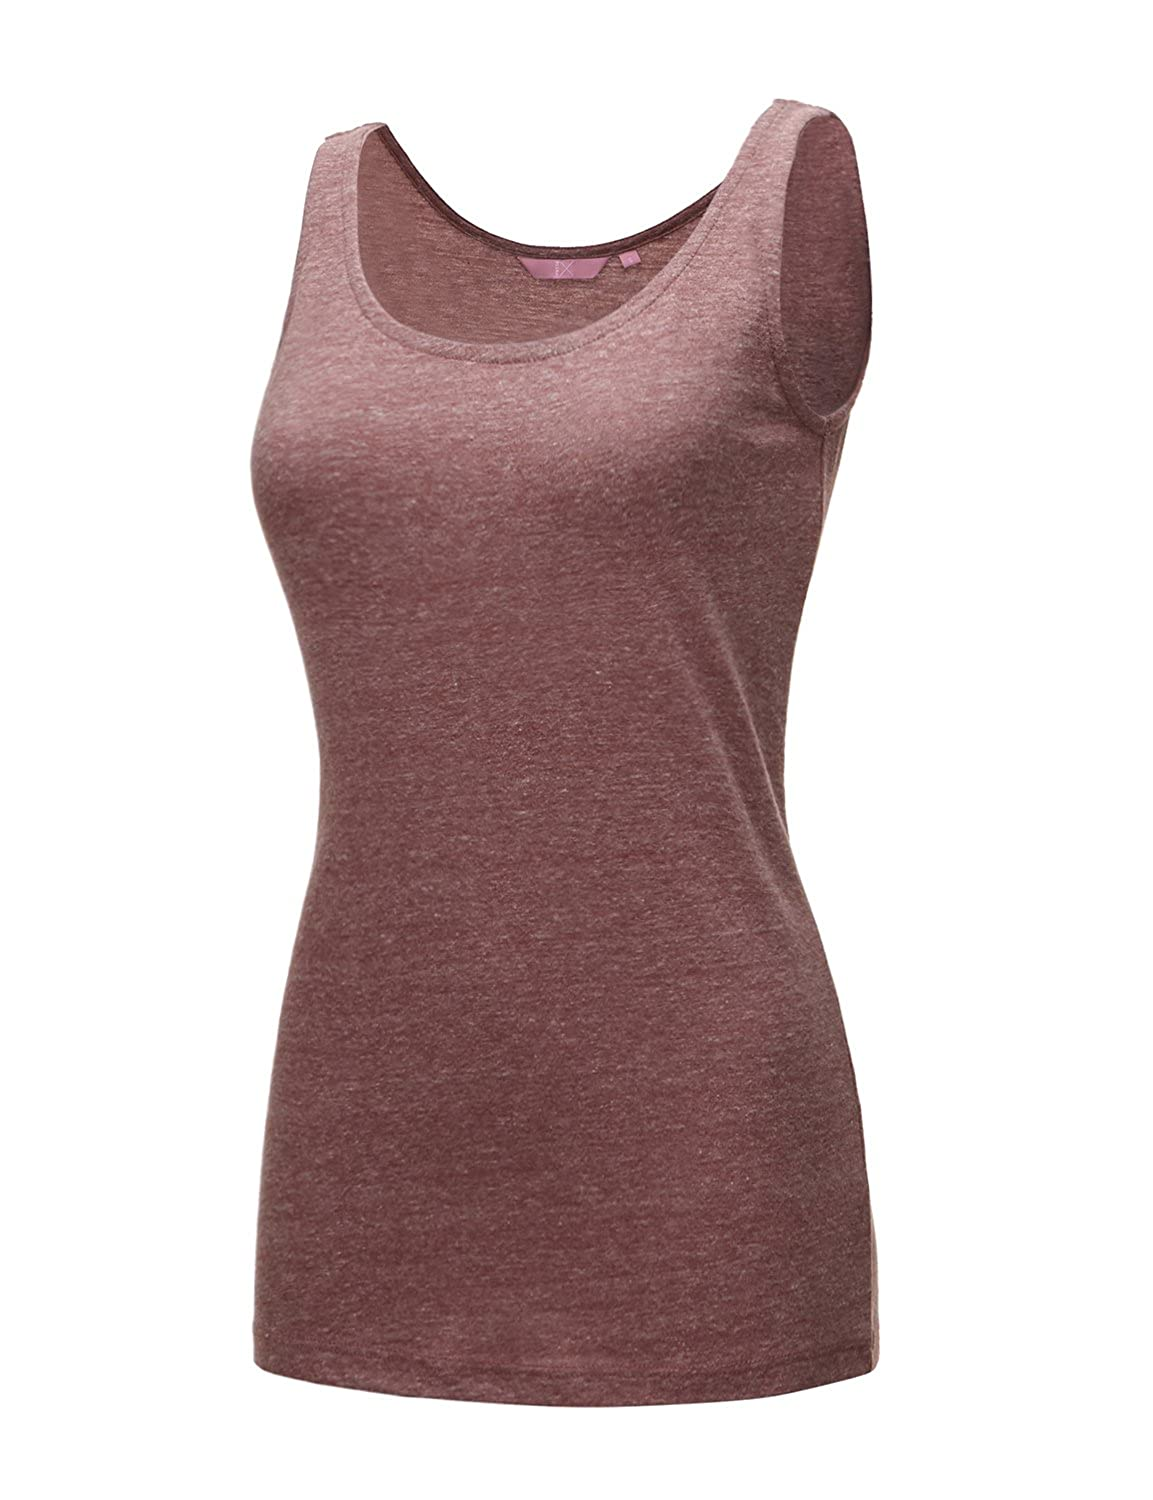 17507_red Regna X [RESTOCK Activewear Running Workouts Clothes Yoga Racerback Tank Tops for Women